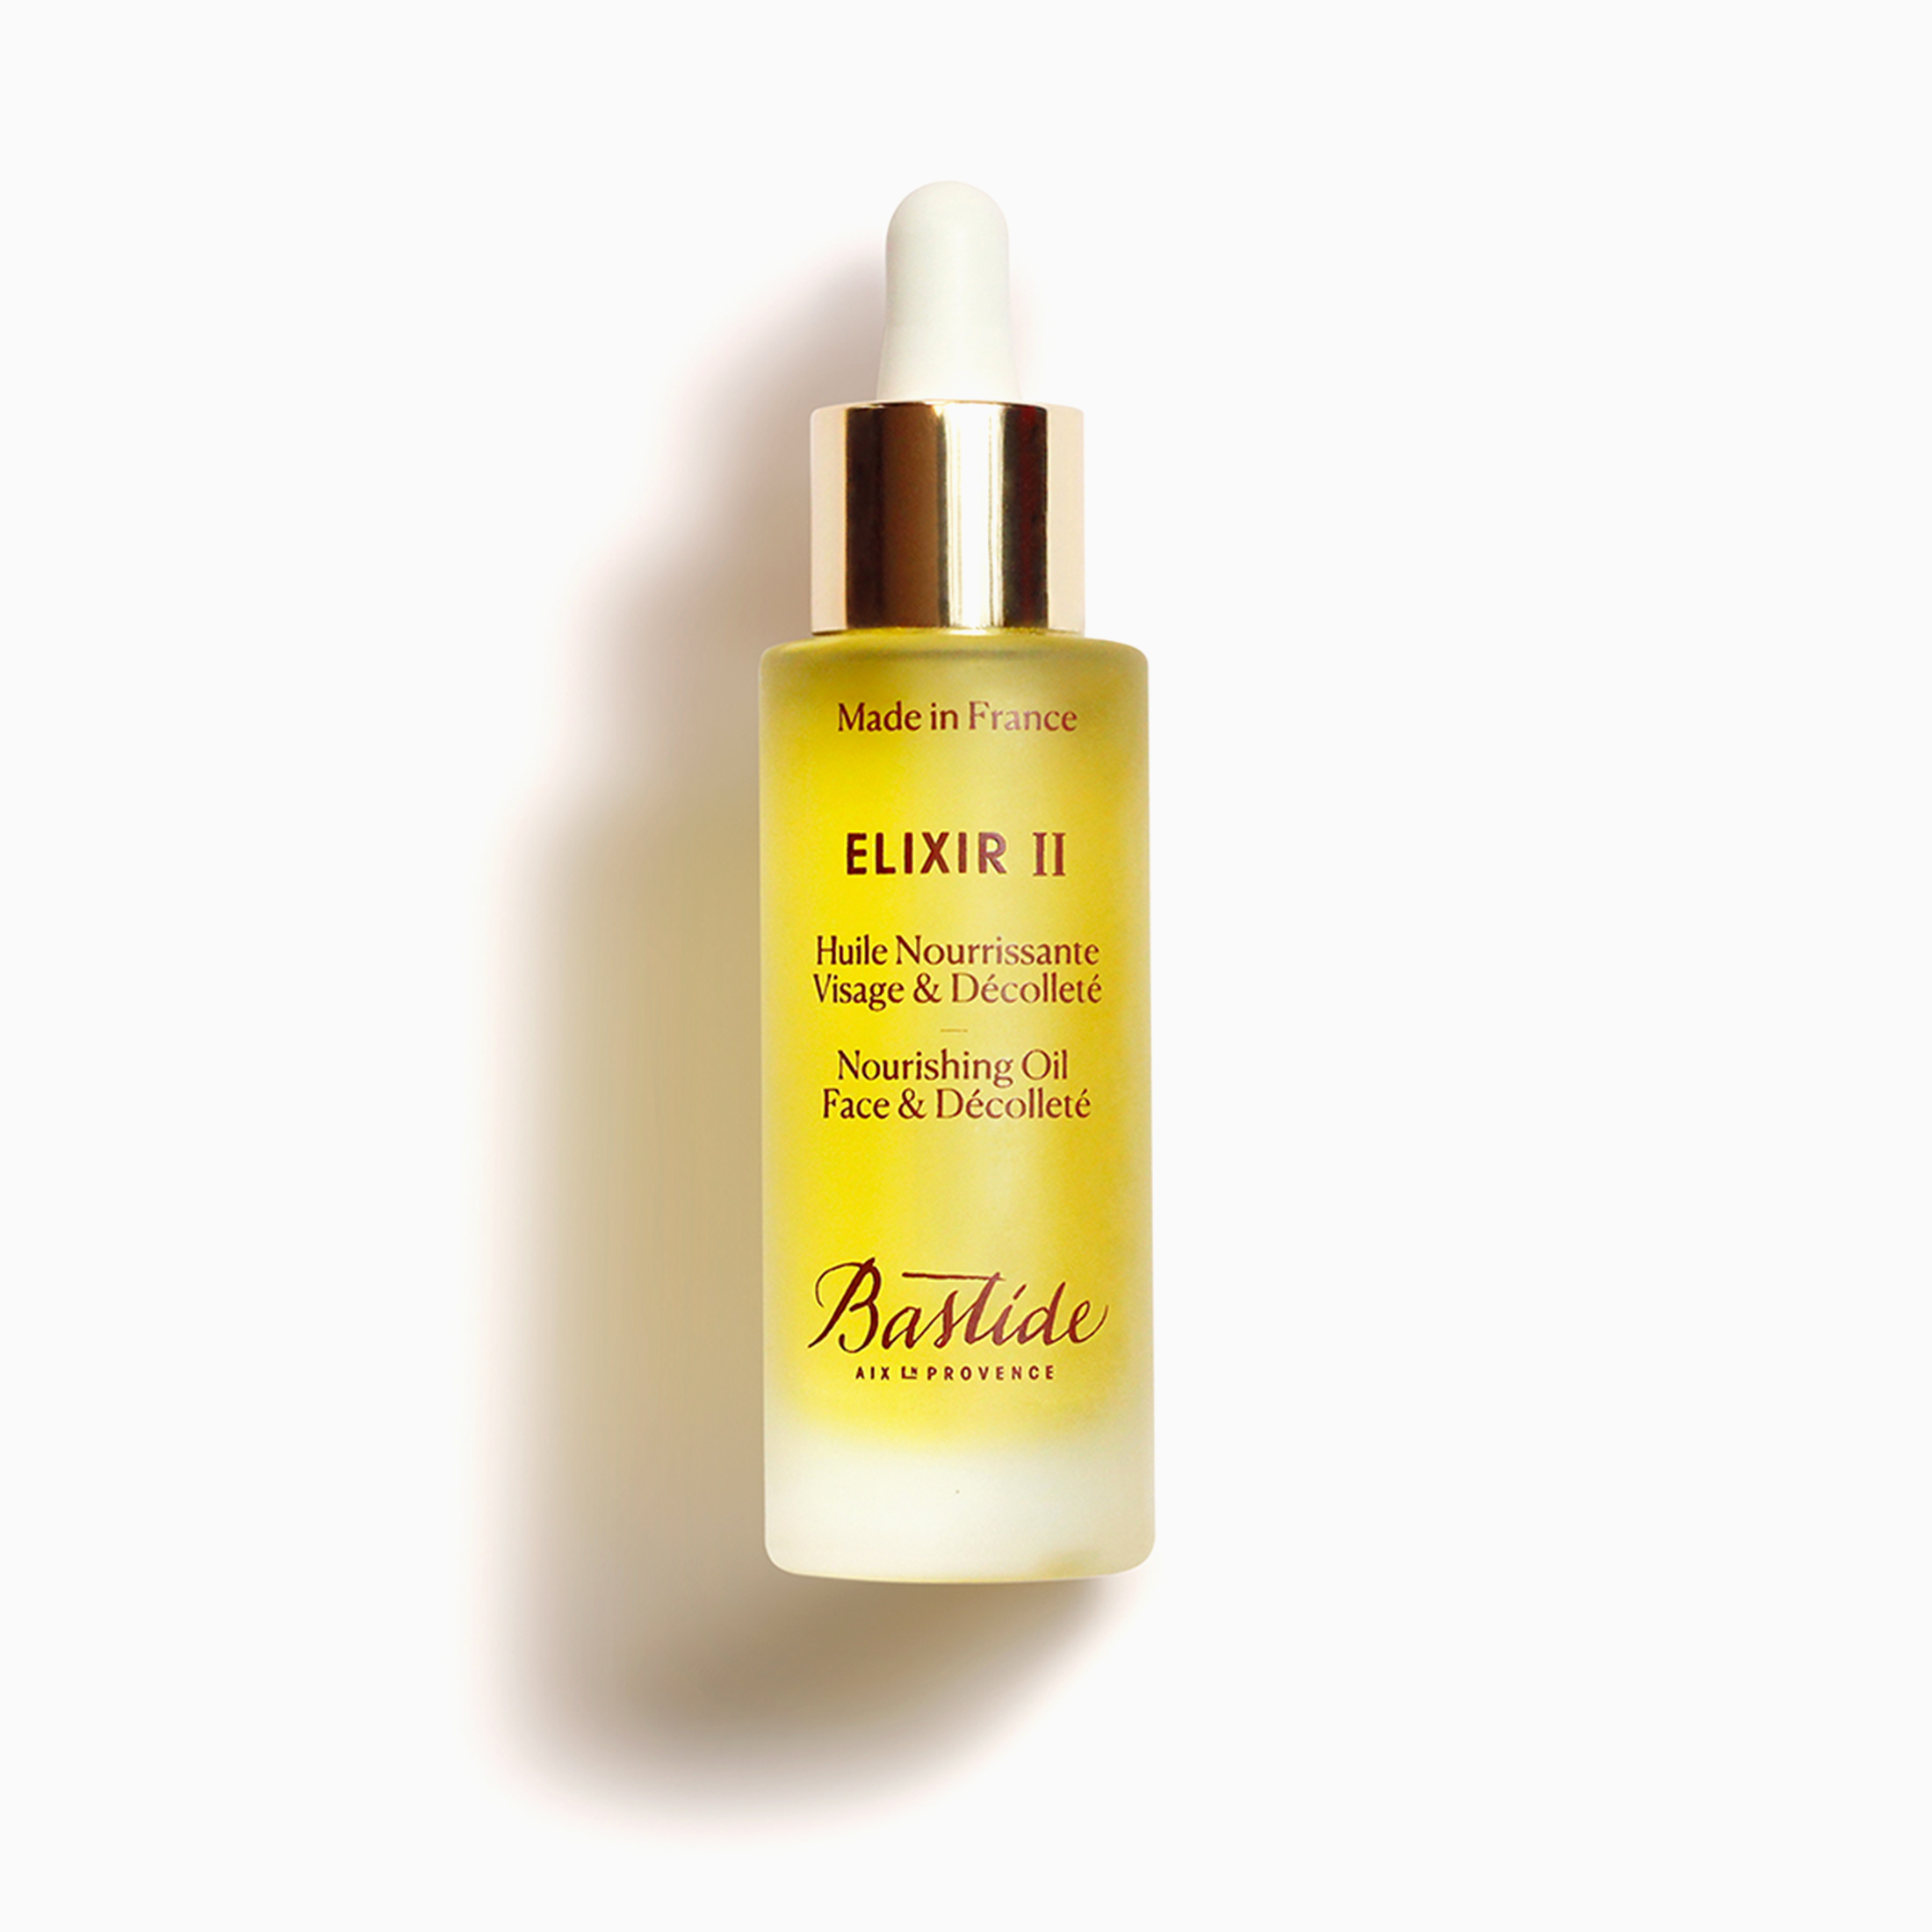 Elixir II Nourishing Oil